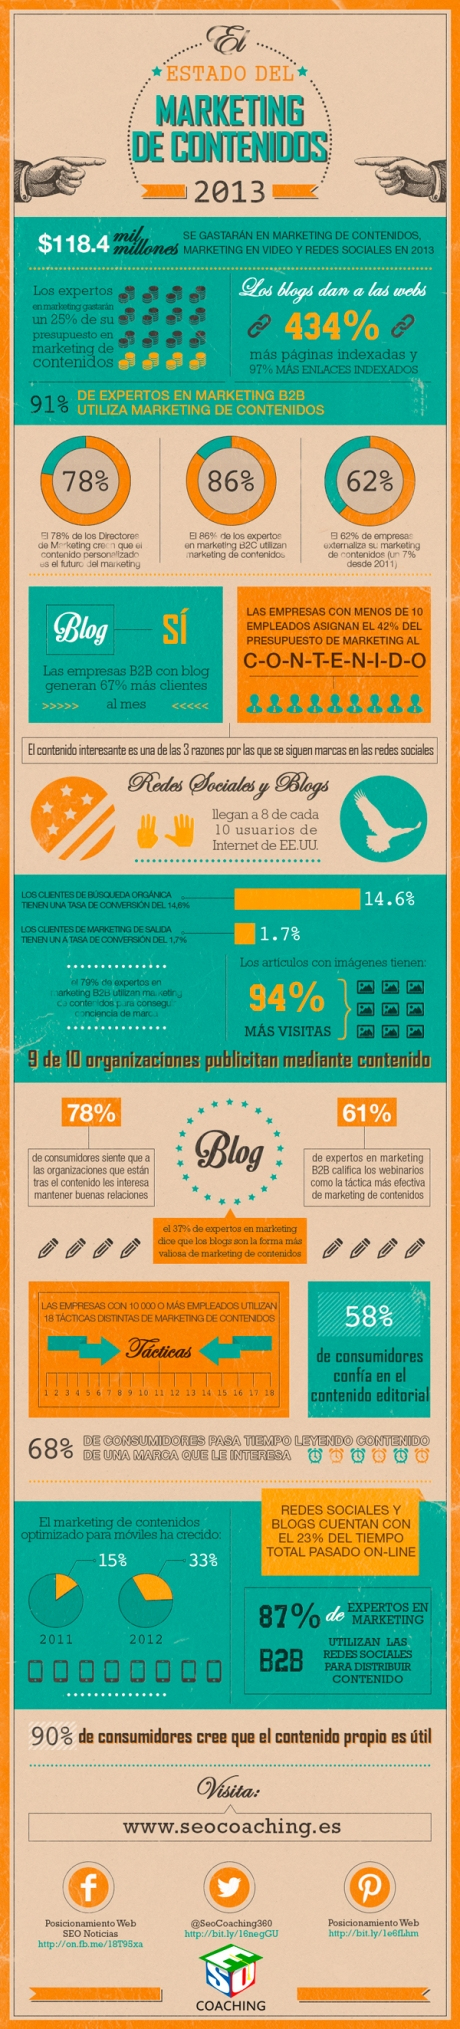 infografia_marketing_de_contenidos_2013